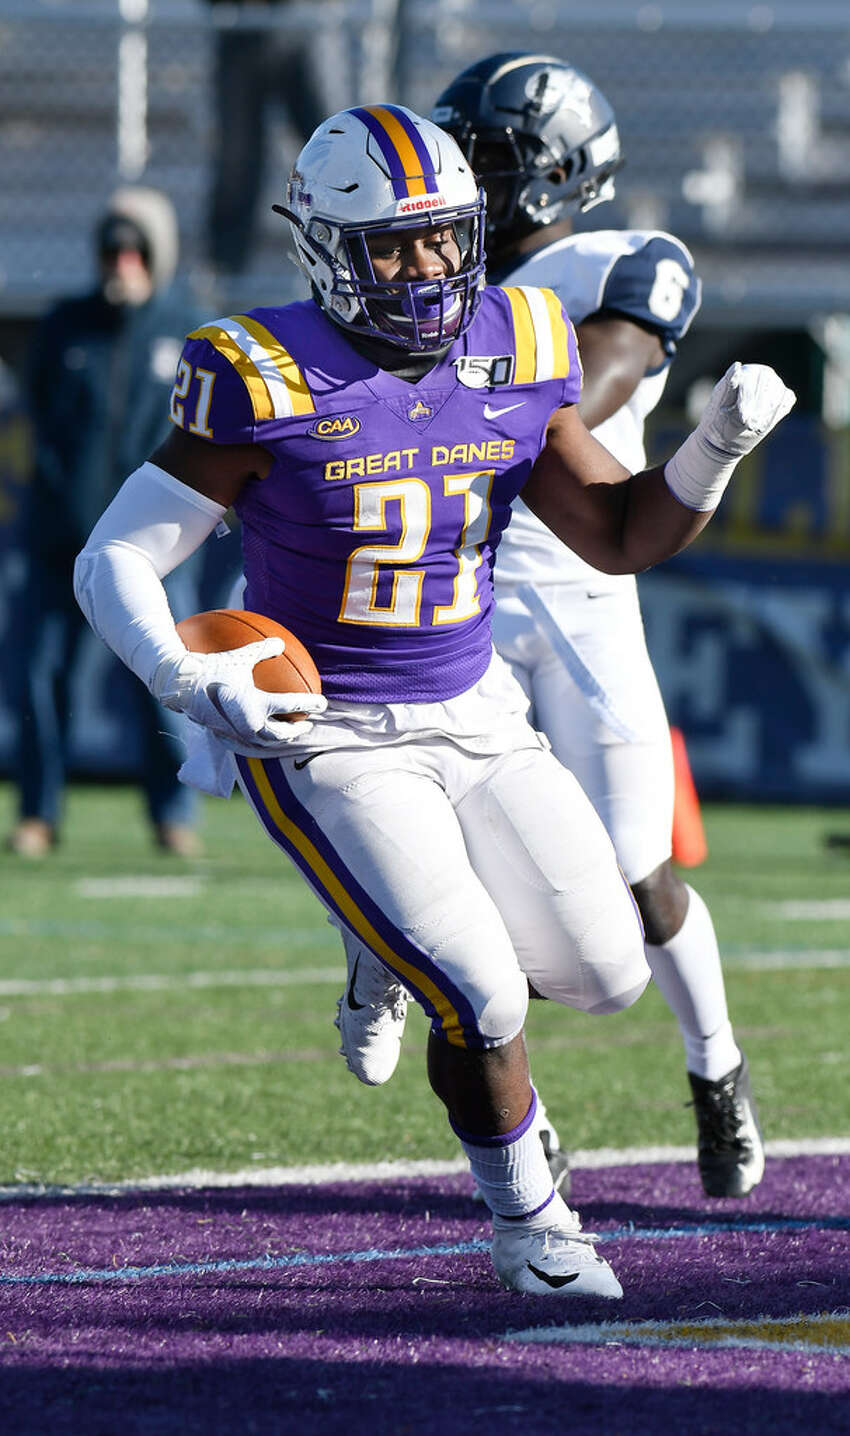 UAlbany's Karl Mofor runs for the first of his two touchdowns in the 24-17 win over New Hampshire on Nov. 16, 2019.